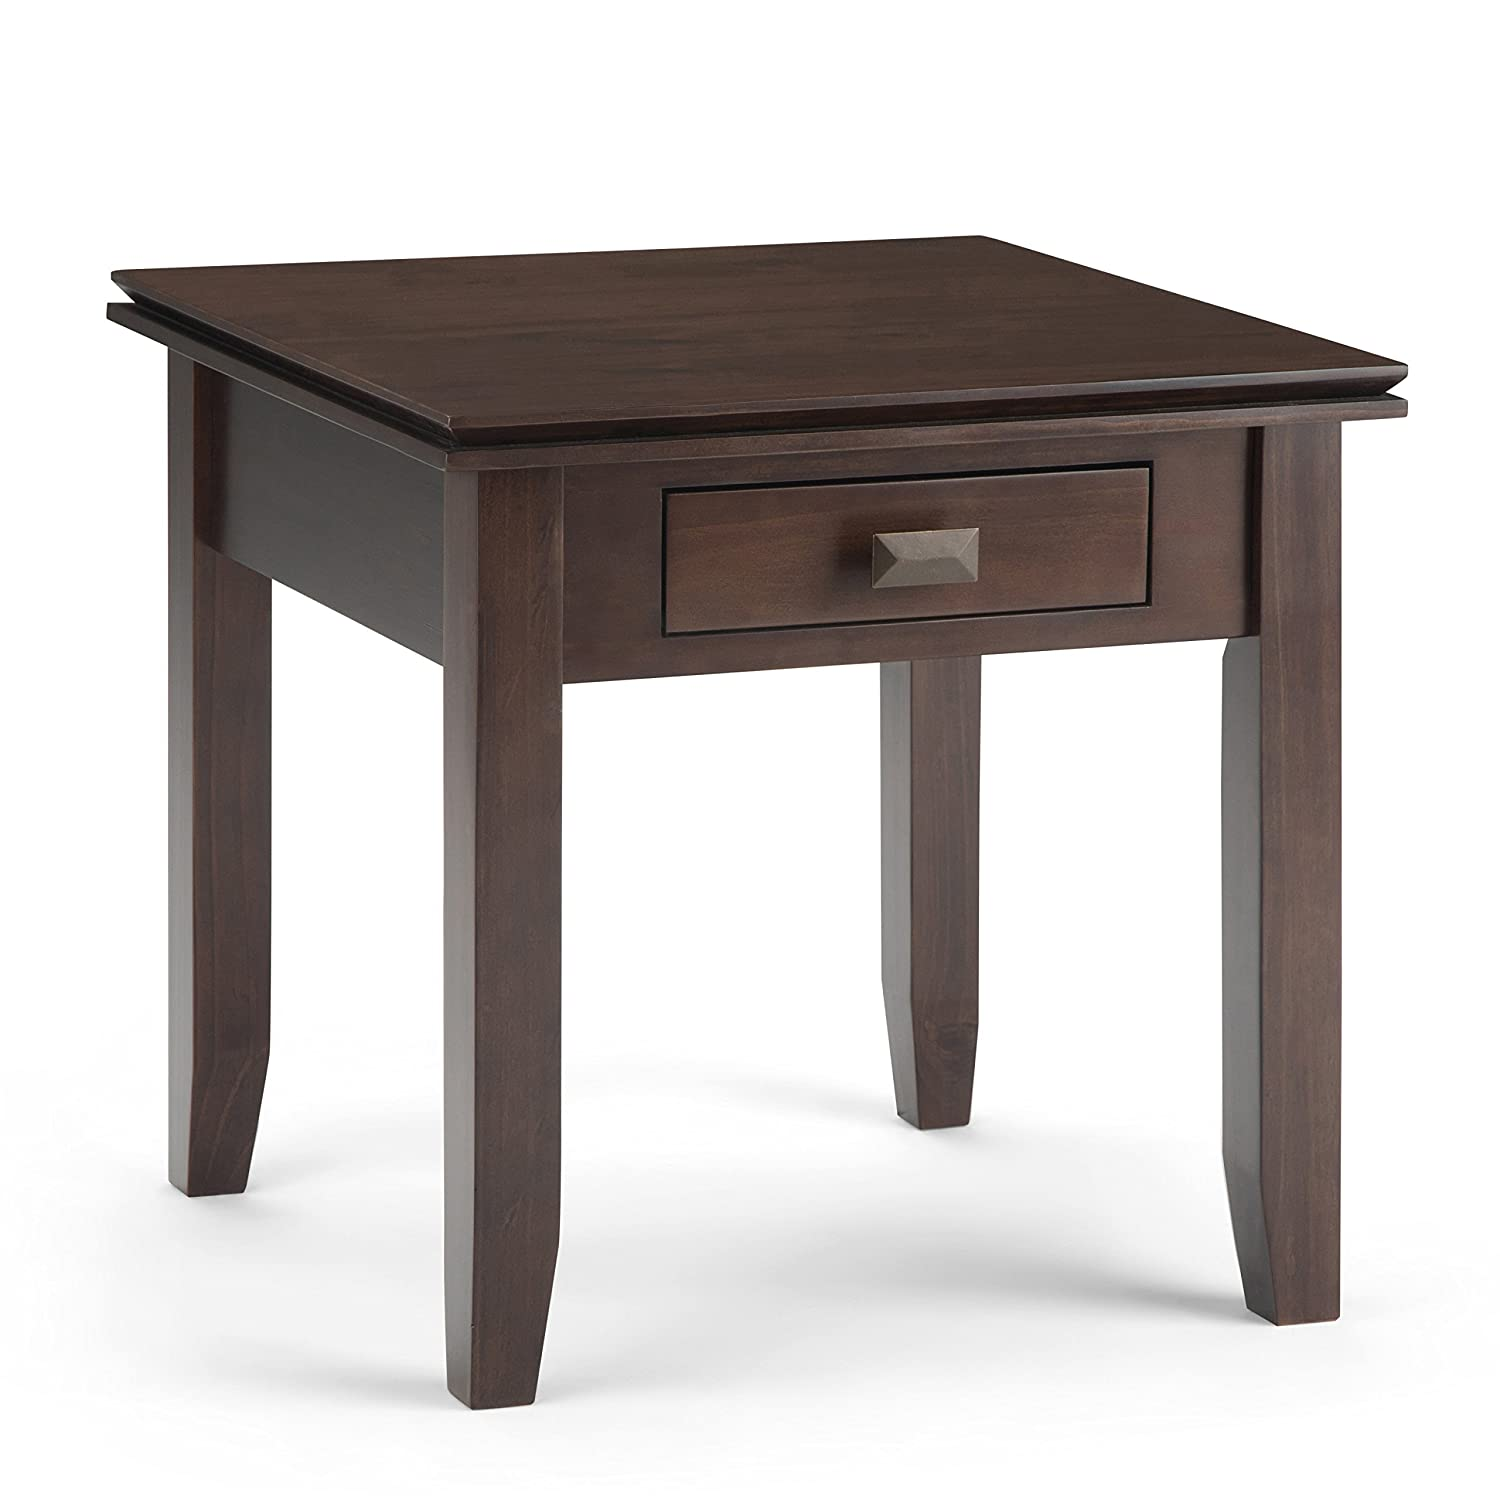 Simpli Home AXCHOL002-TB Artisan Solid Wood End Side Table in Tobacco Brown